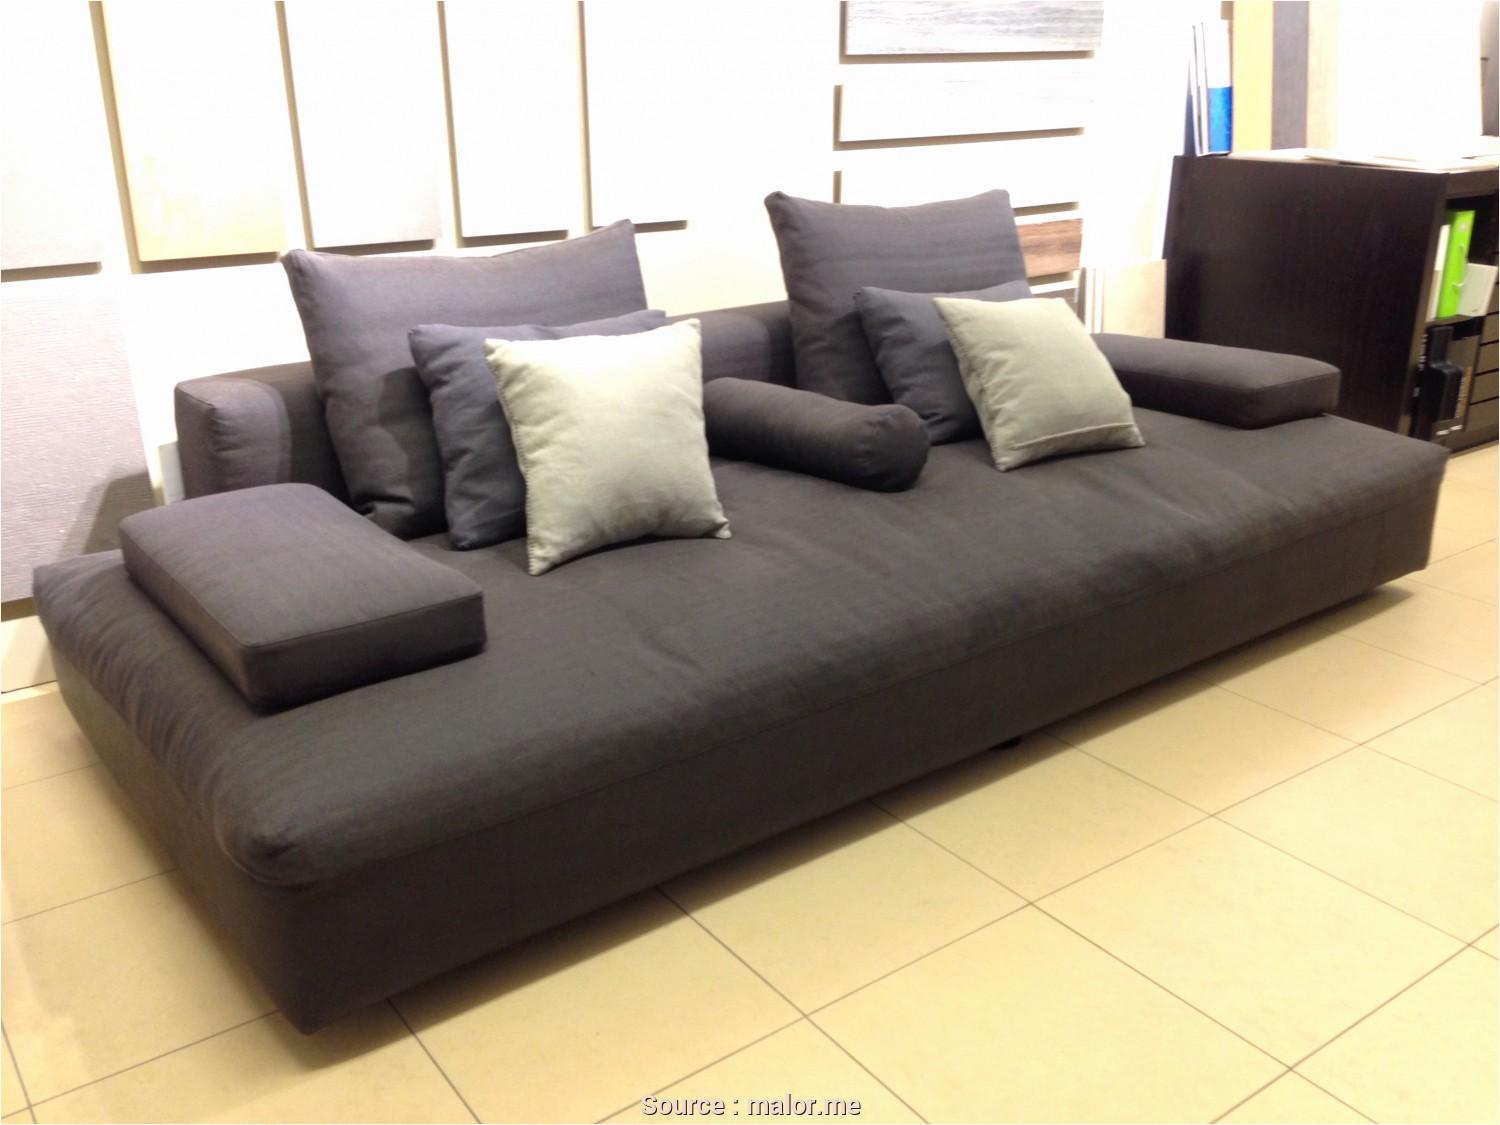 Outlet Divani E Divani By Natuzzi, Incredibile Full Size Of Divani E Divani By Natuzzi Outlet Divani E Divani By Natuzzi Gallery Of